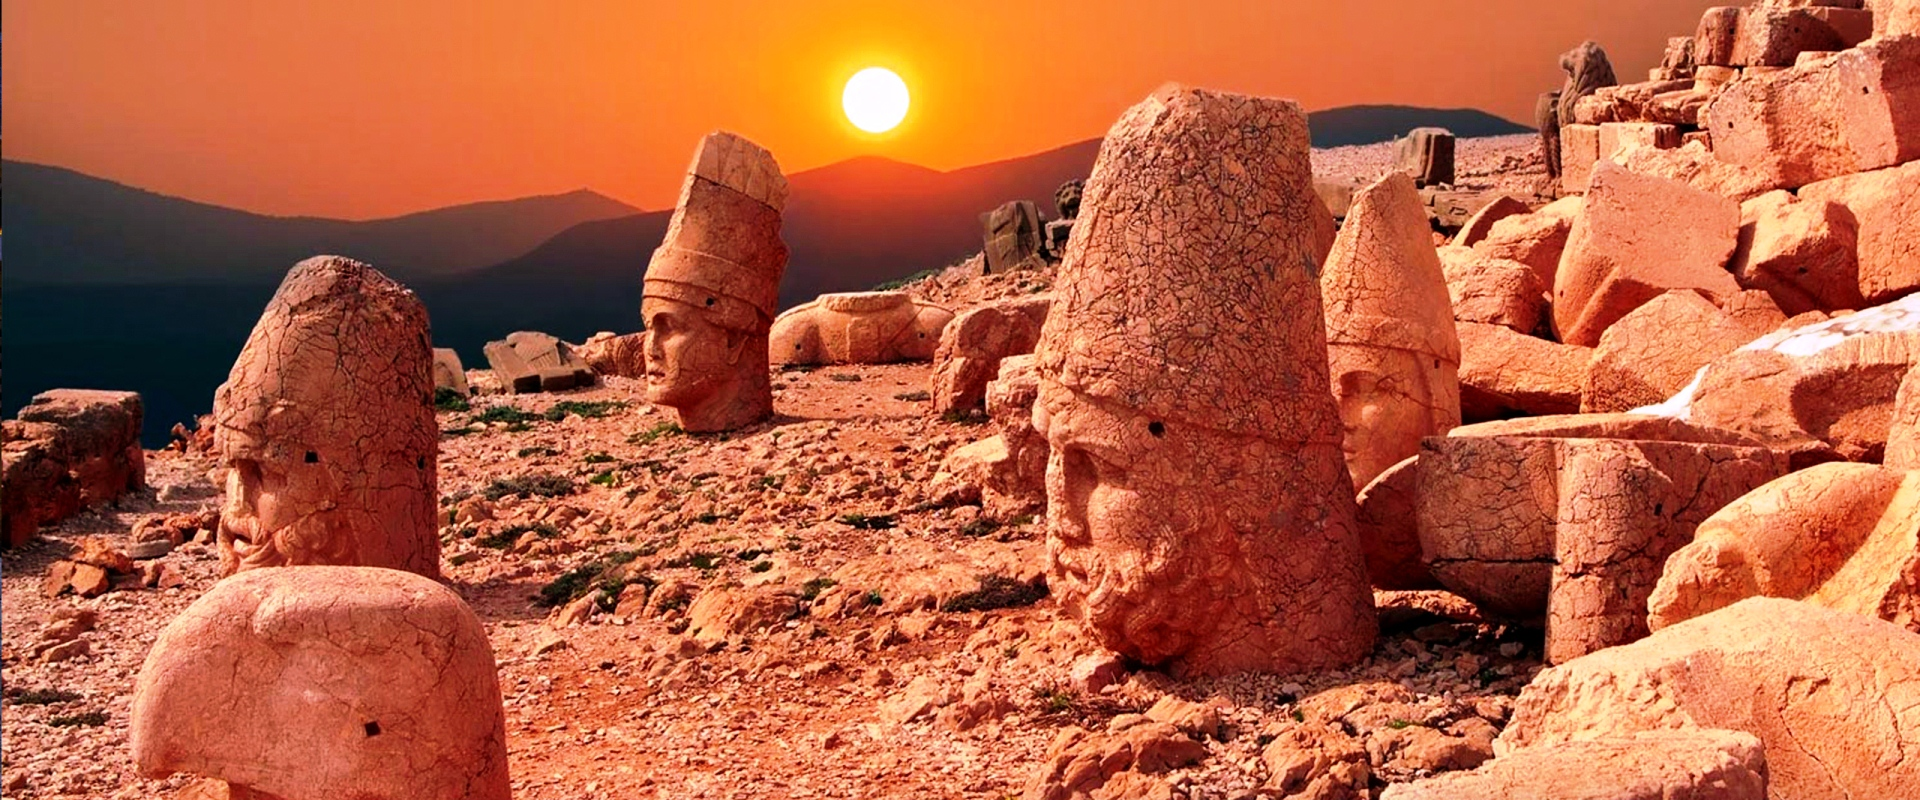 turkey-nemrut-dağı